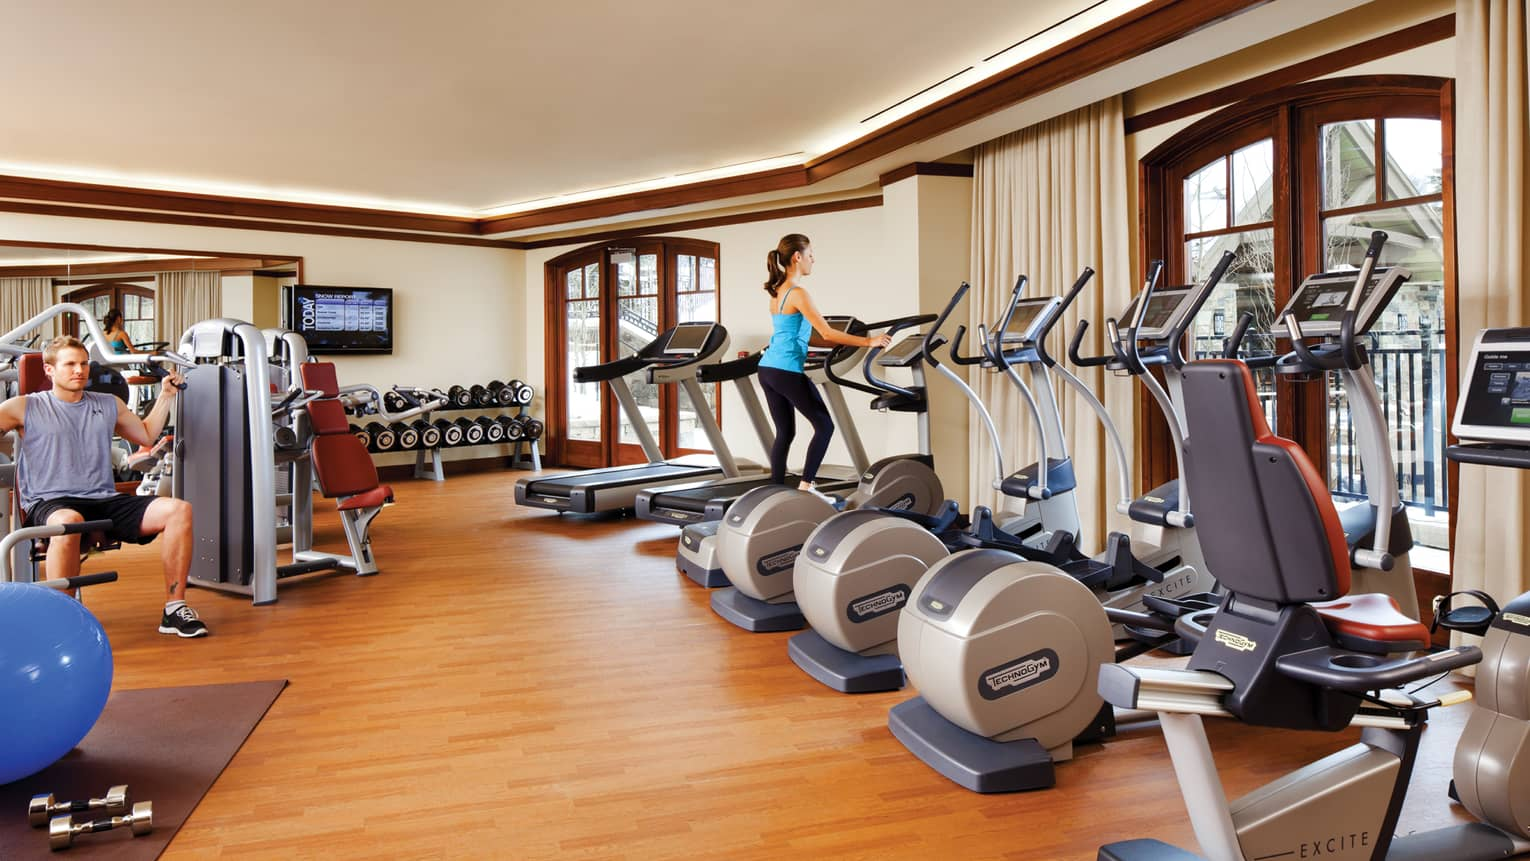 Woman on elliptical in row of cardio machines, man bench presses weights behind